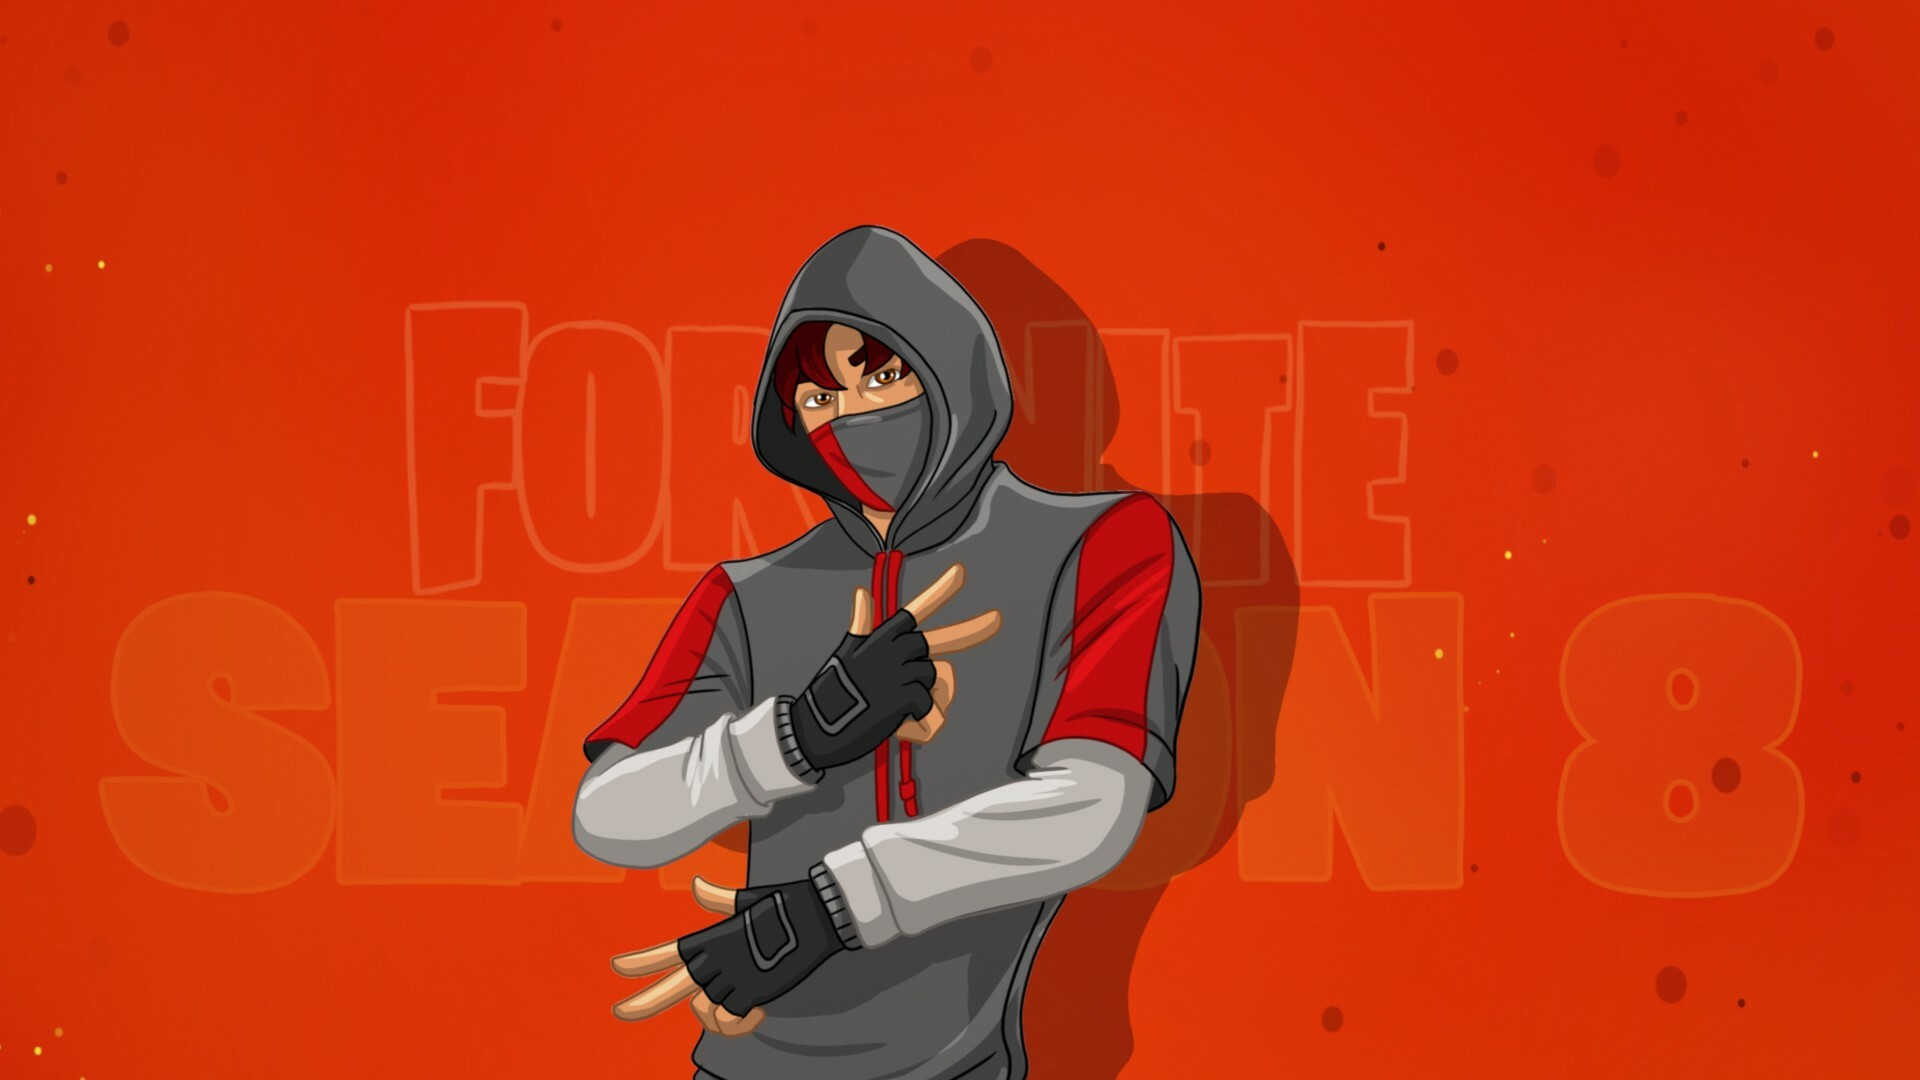 Artstation How To Draw Ikonik Easy Fortnite Season 8 Tutorial